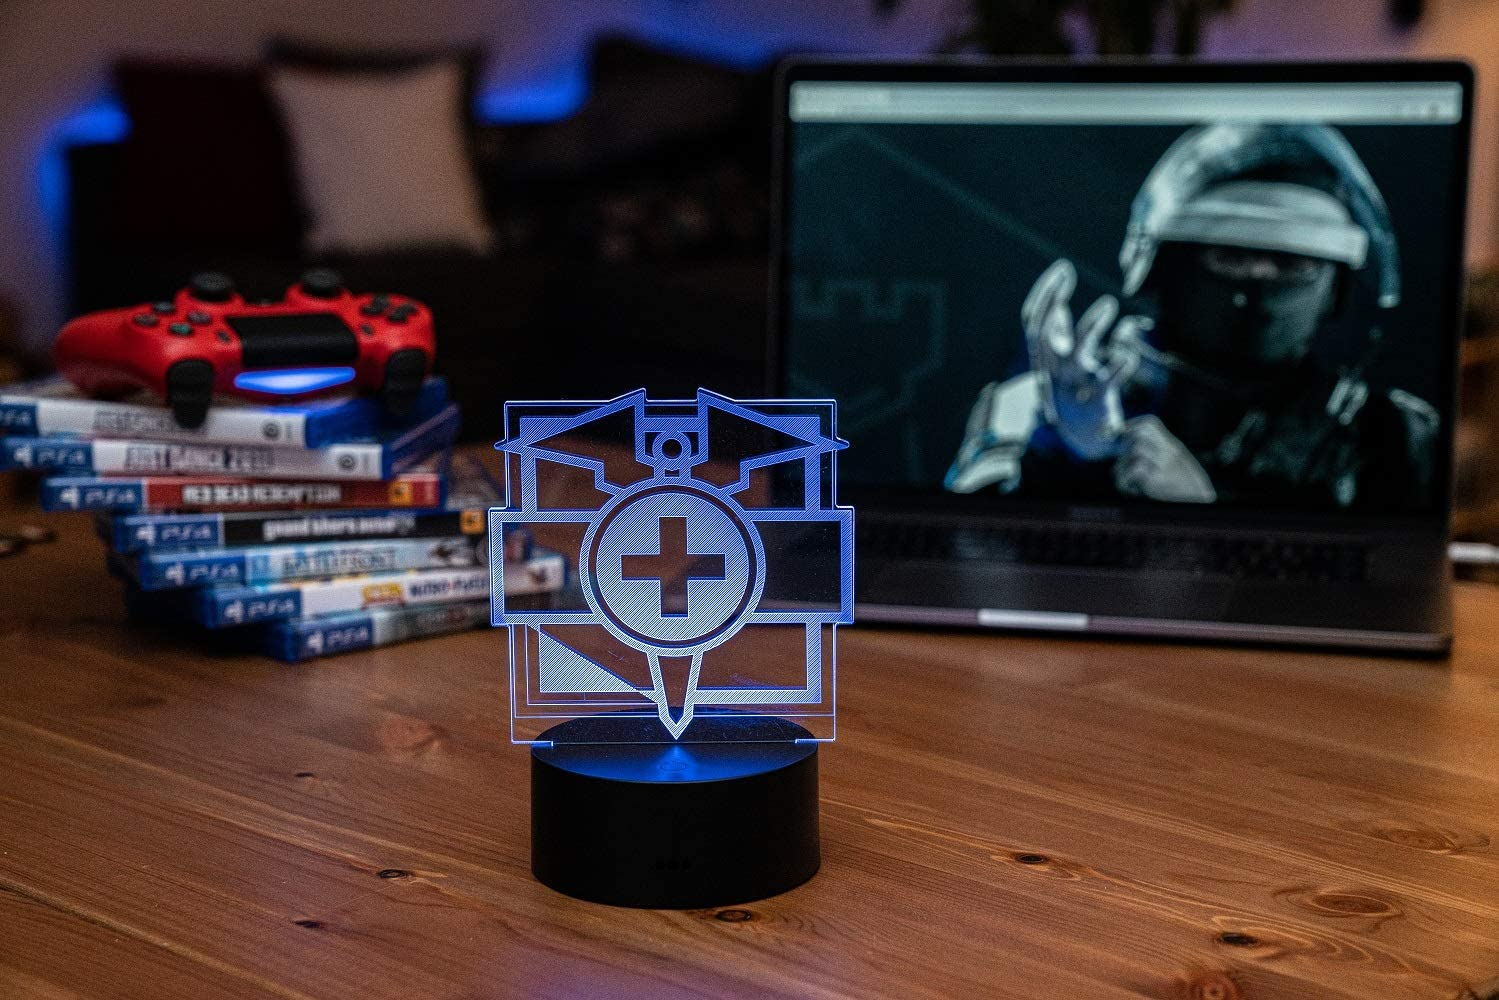 Six Siege LED Lamp - Doc Operator - Rainbow Six Siege Decor for The Bedroom or Gaming Studio - Color Changing LED Nightlight Great for Cosplay Photoshoots with Any R6 Character